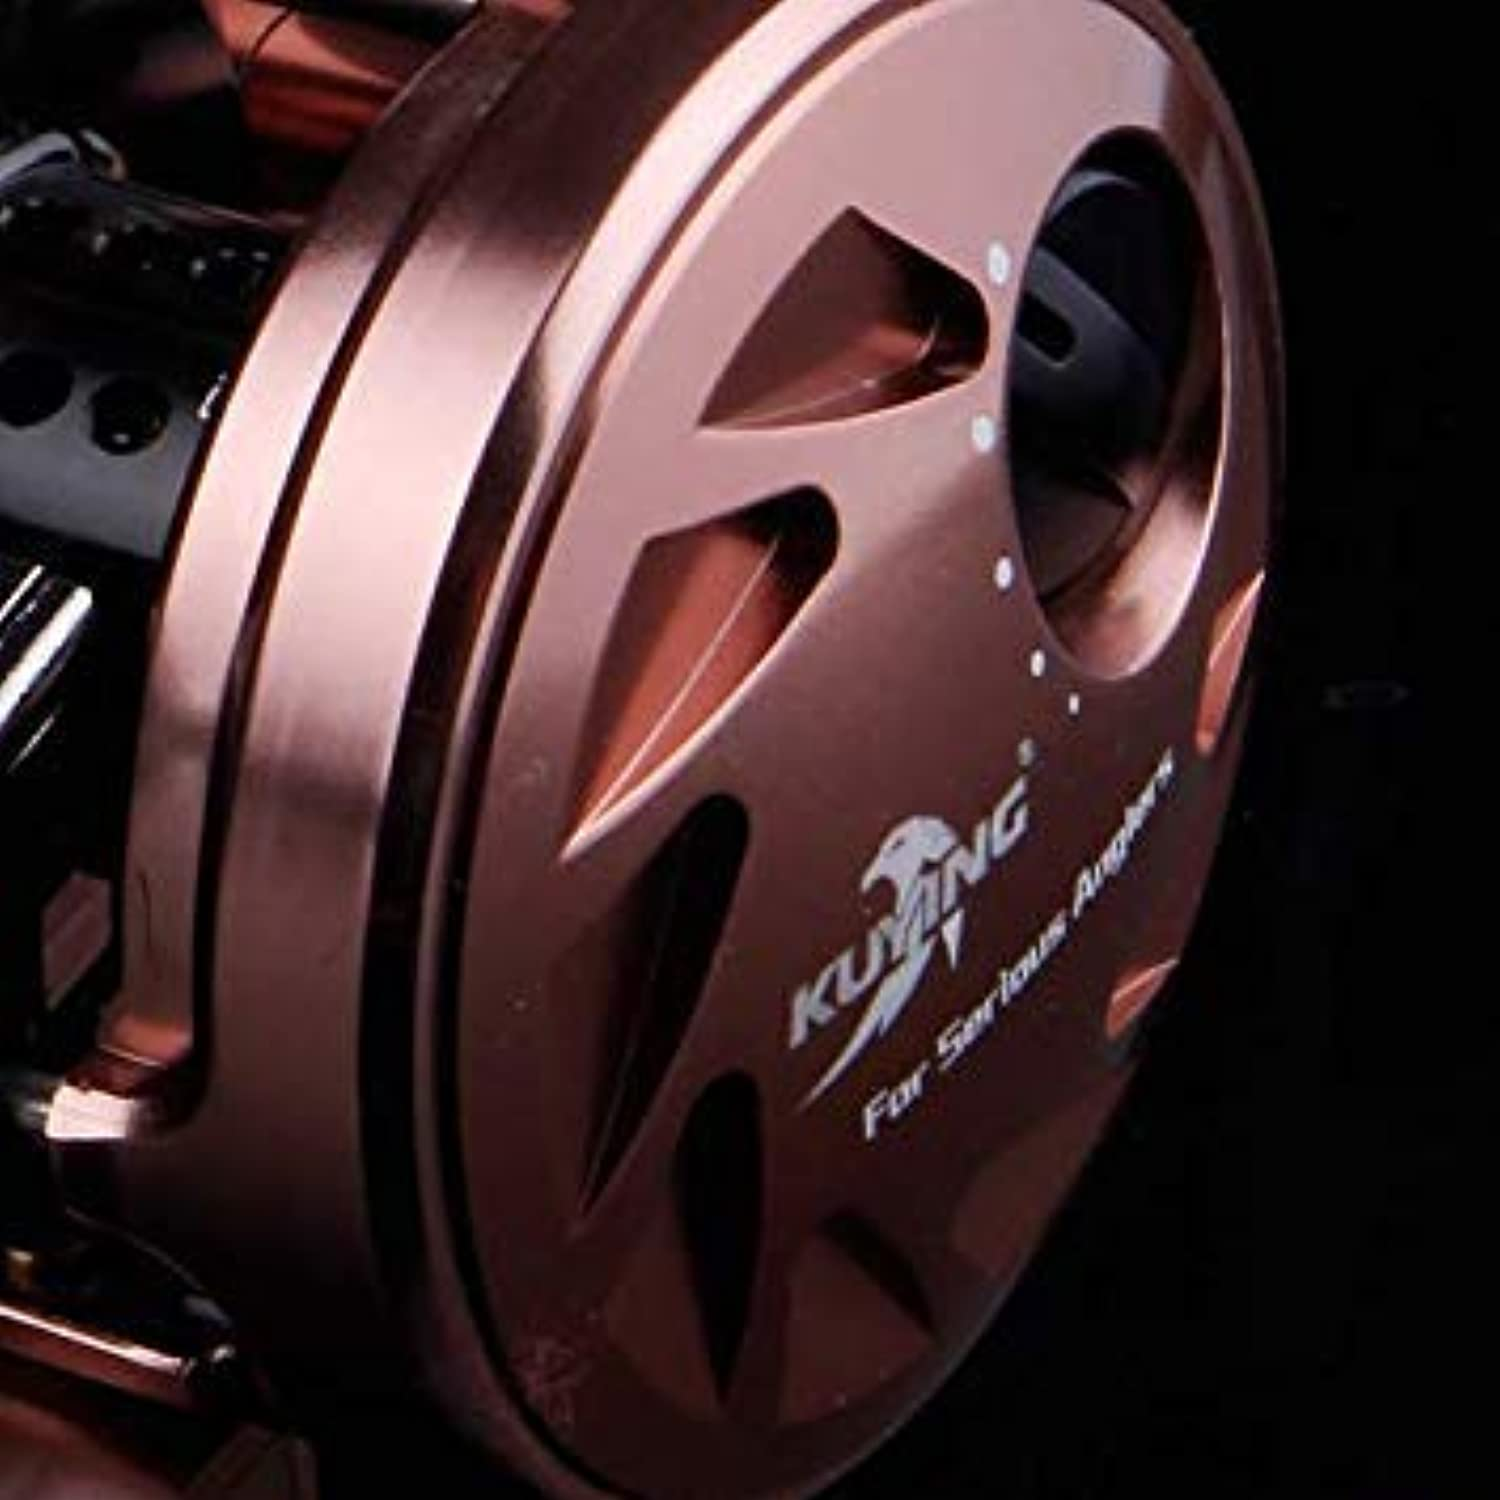 GEOPONICS KUYING Magician 6.2 1 12+1 MetalCasting Drum 286.5g Fishing Reel Vessel Wheel Saltwater Coil Centrifugal 8KG color Brown color Use Mode Right Handed